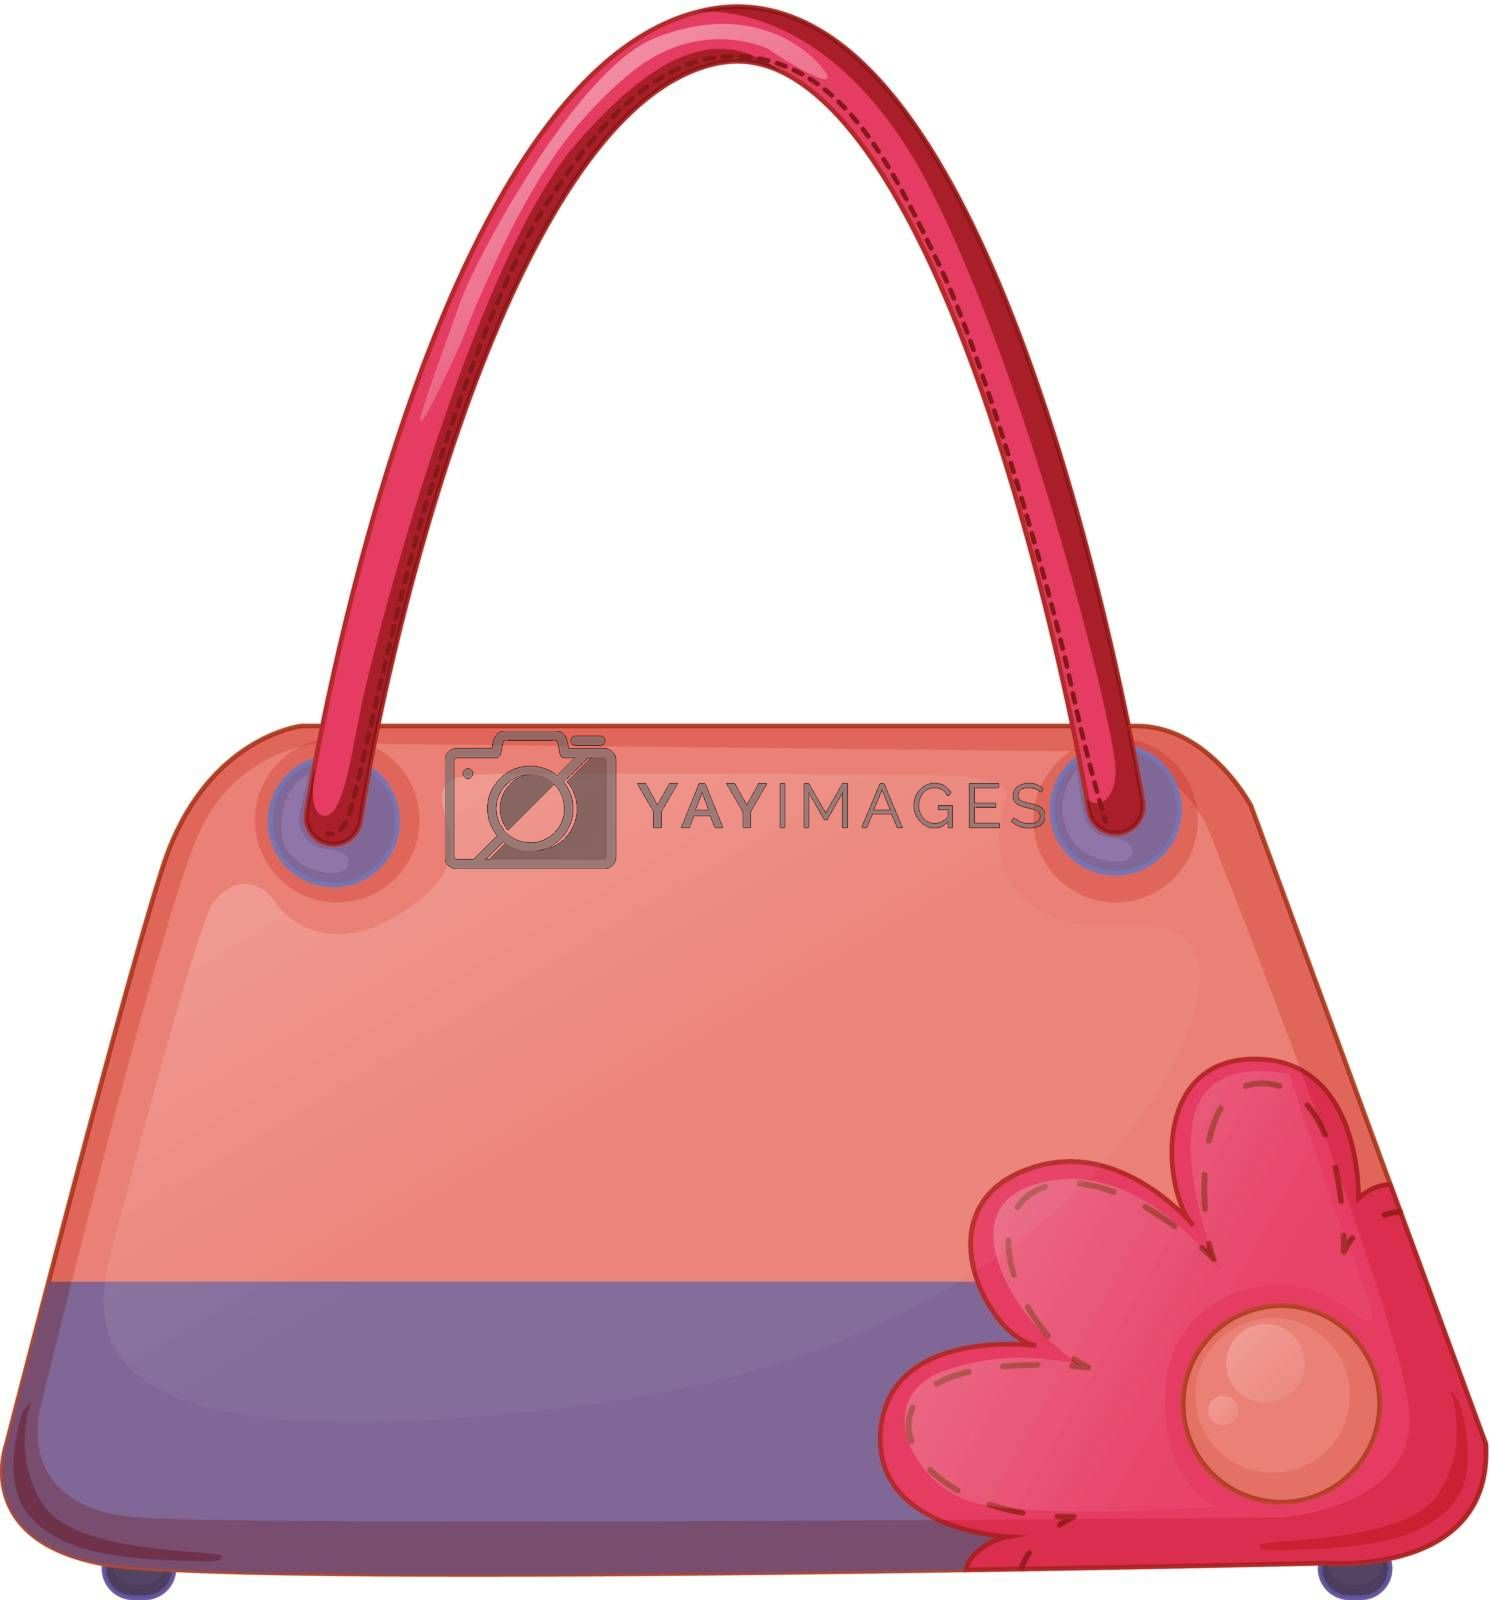 A pink fashion bag by iimages